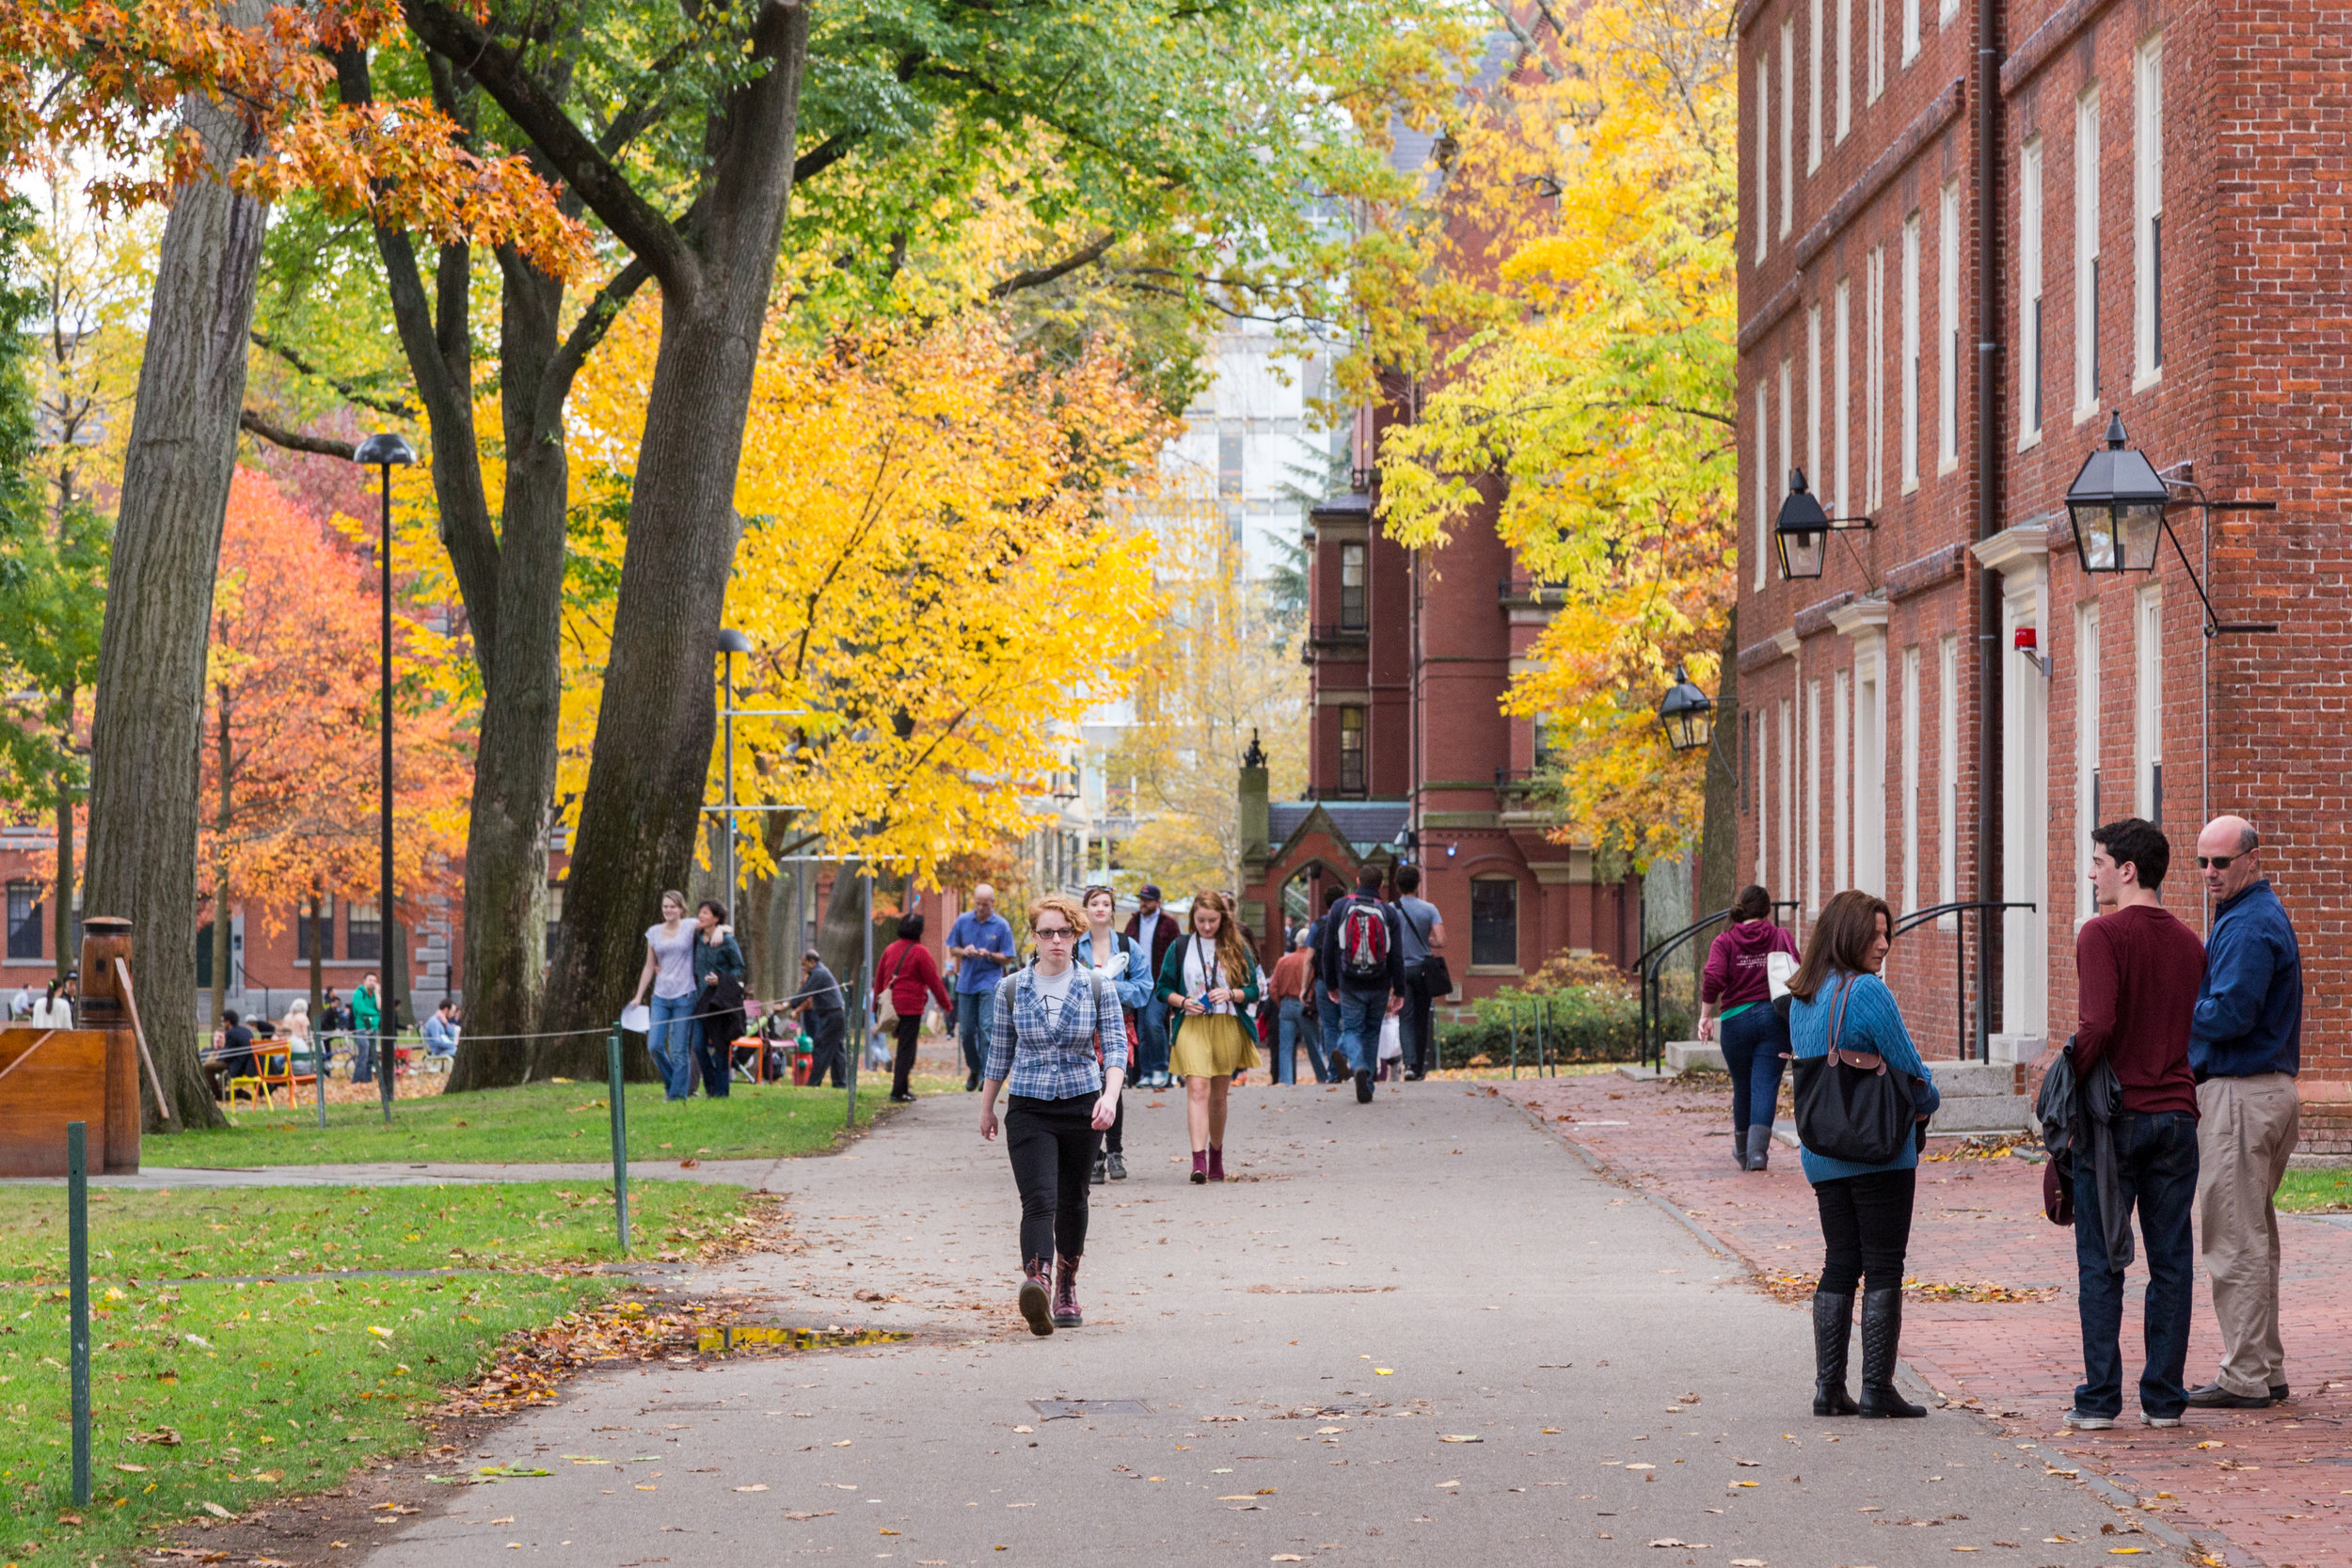 College Advising - Planning which colleges to visit & apply toWriting the personal essayBuilding your resuméCompleting the Common AppPreparing for alumni and on-campus interviewsNavigating deferrals and waitlistsAssessing offers of admission